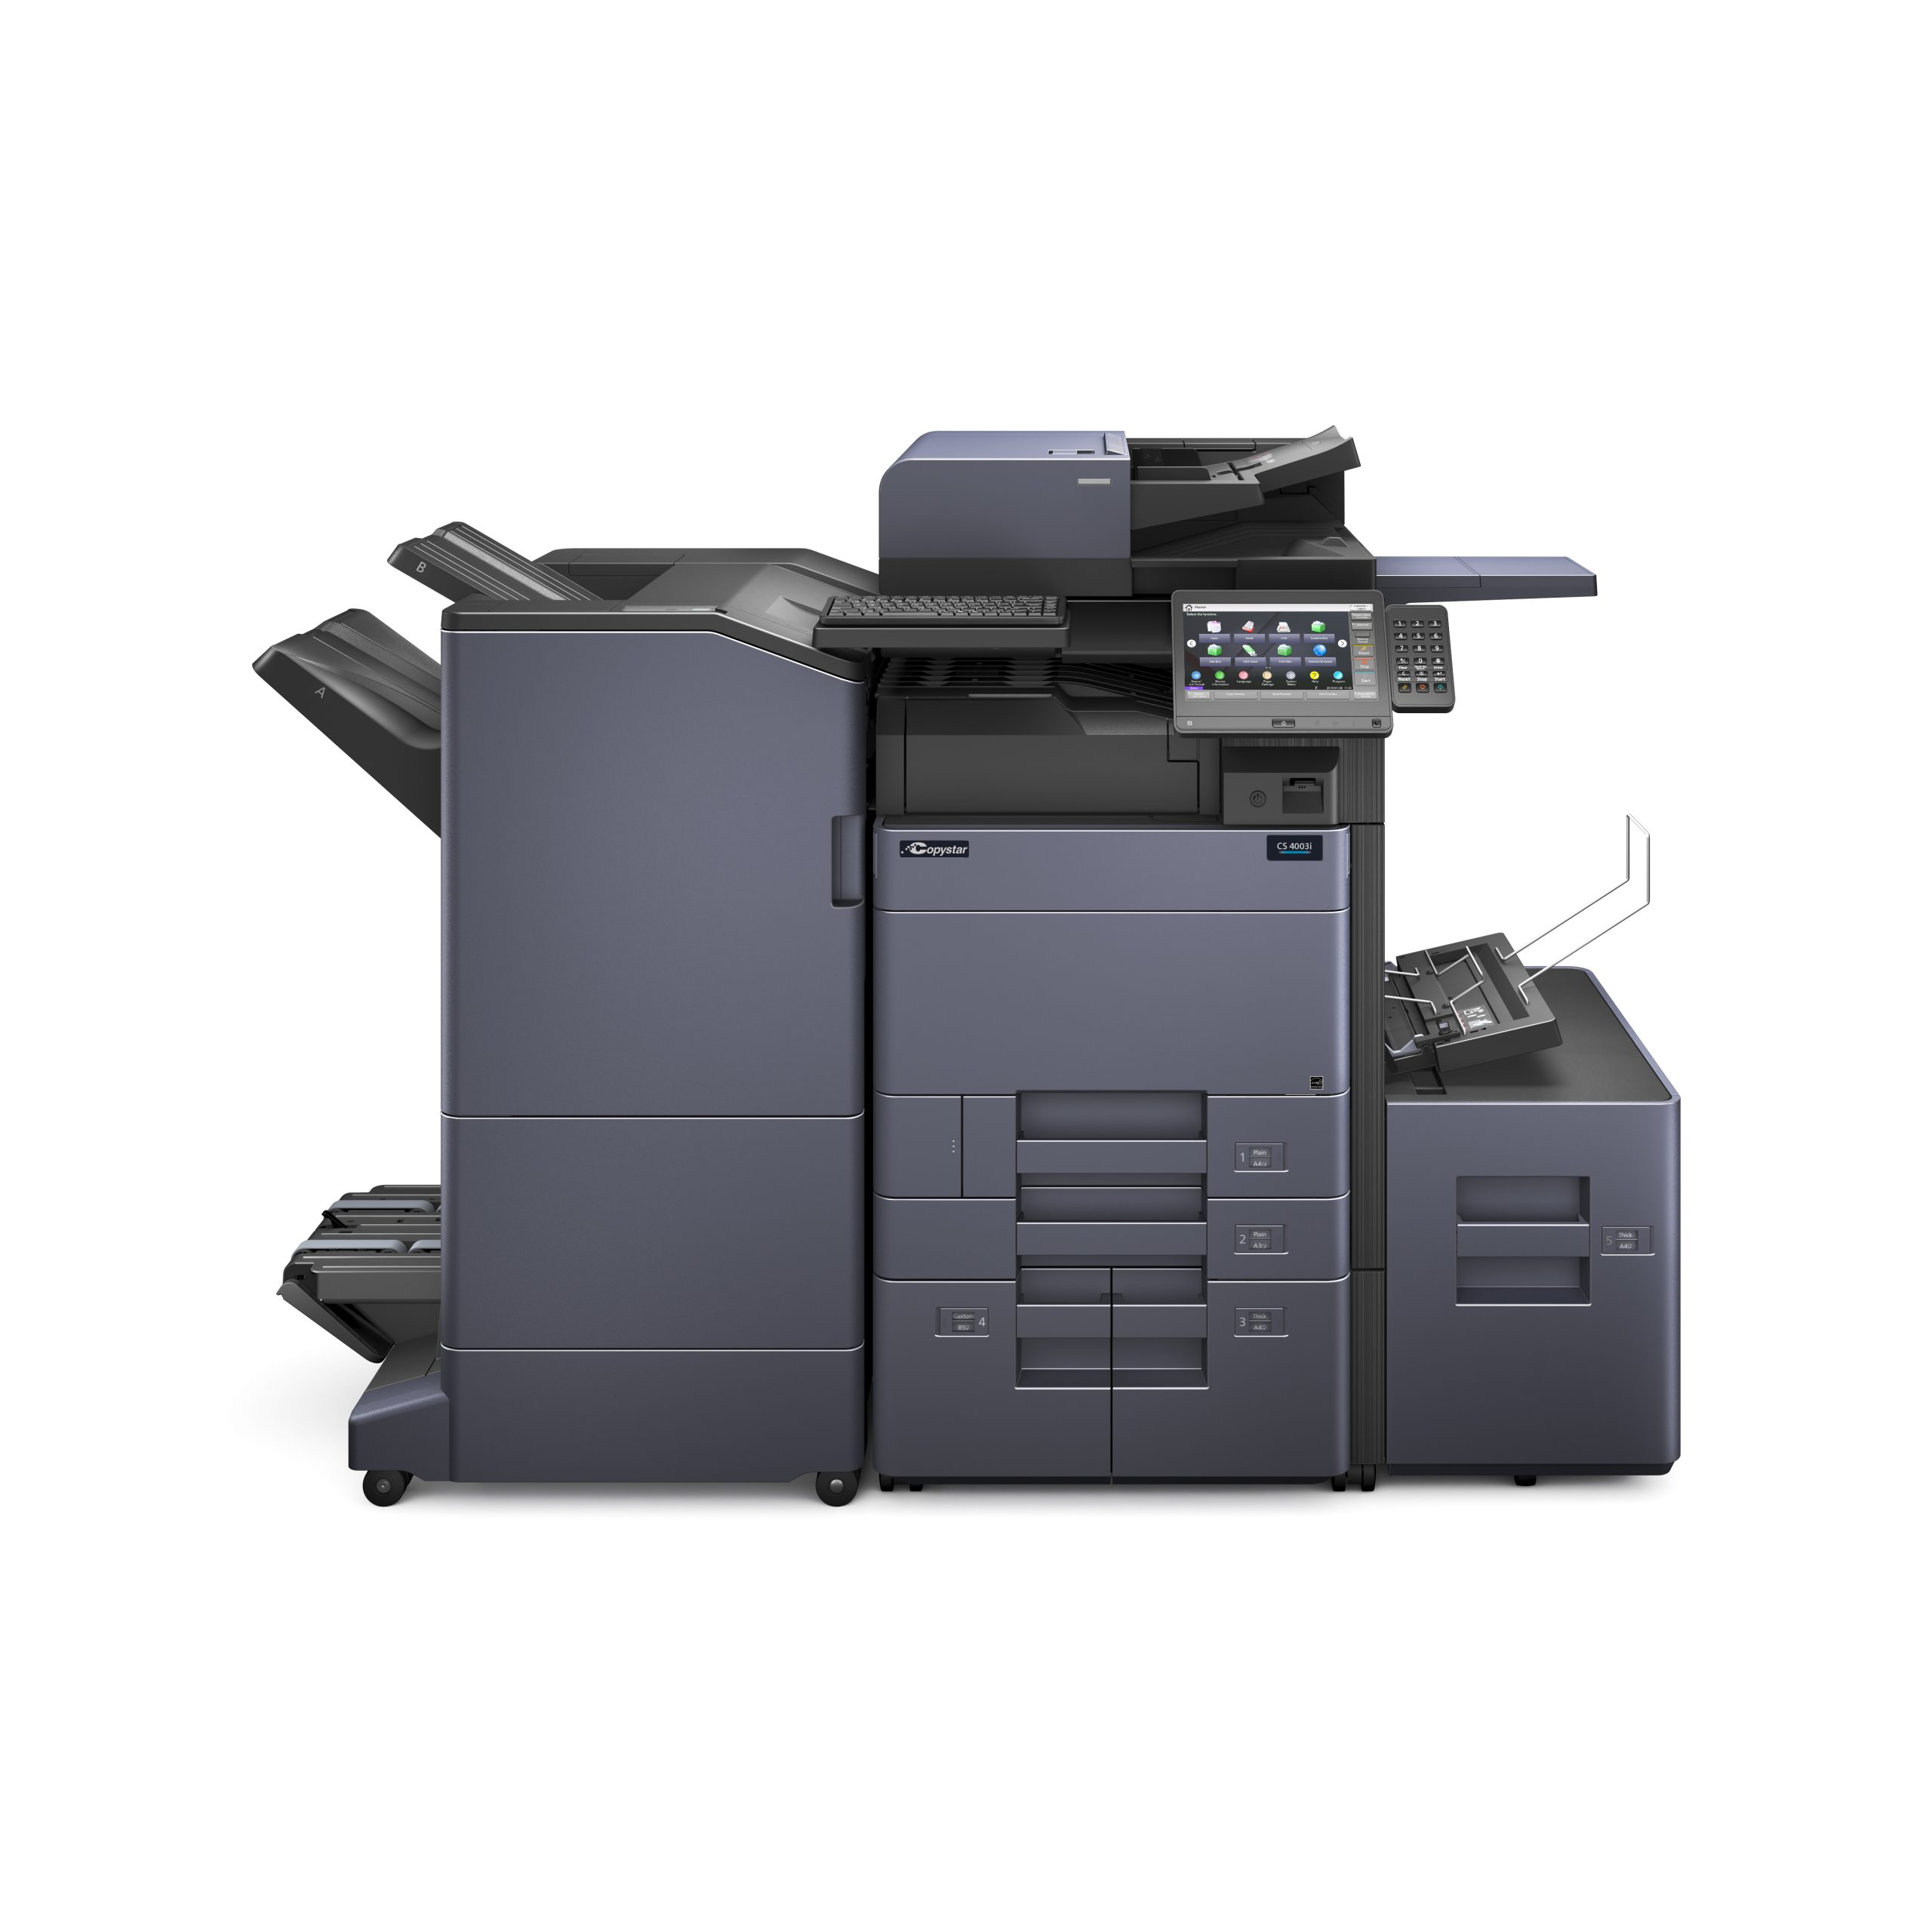 kyocera CS_4003i Copy Machine Leasing Florida